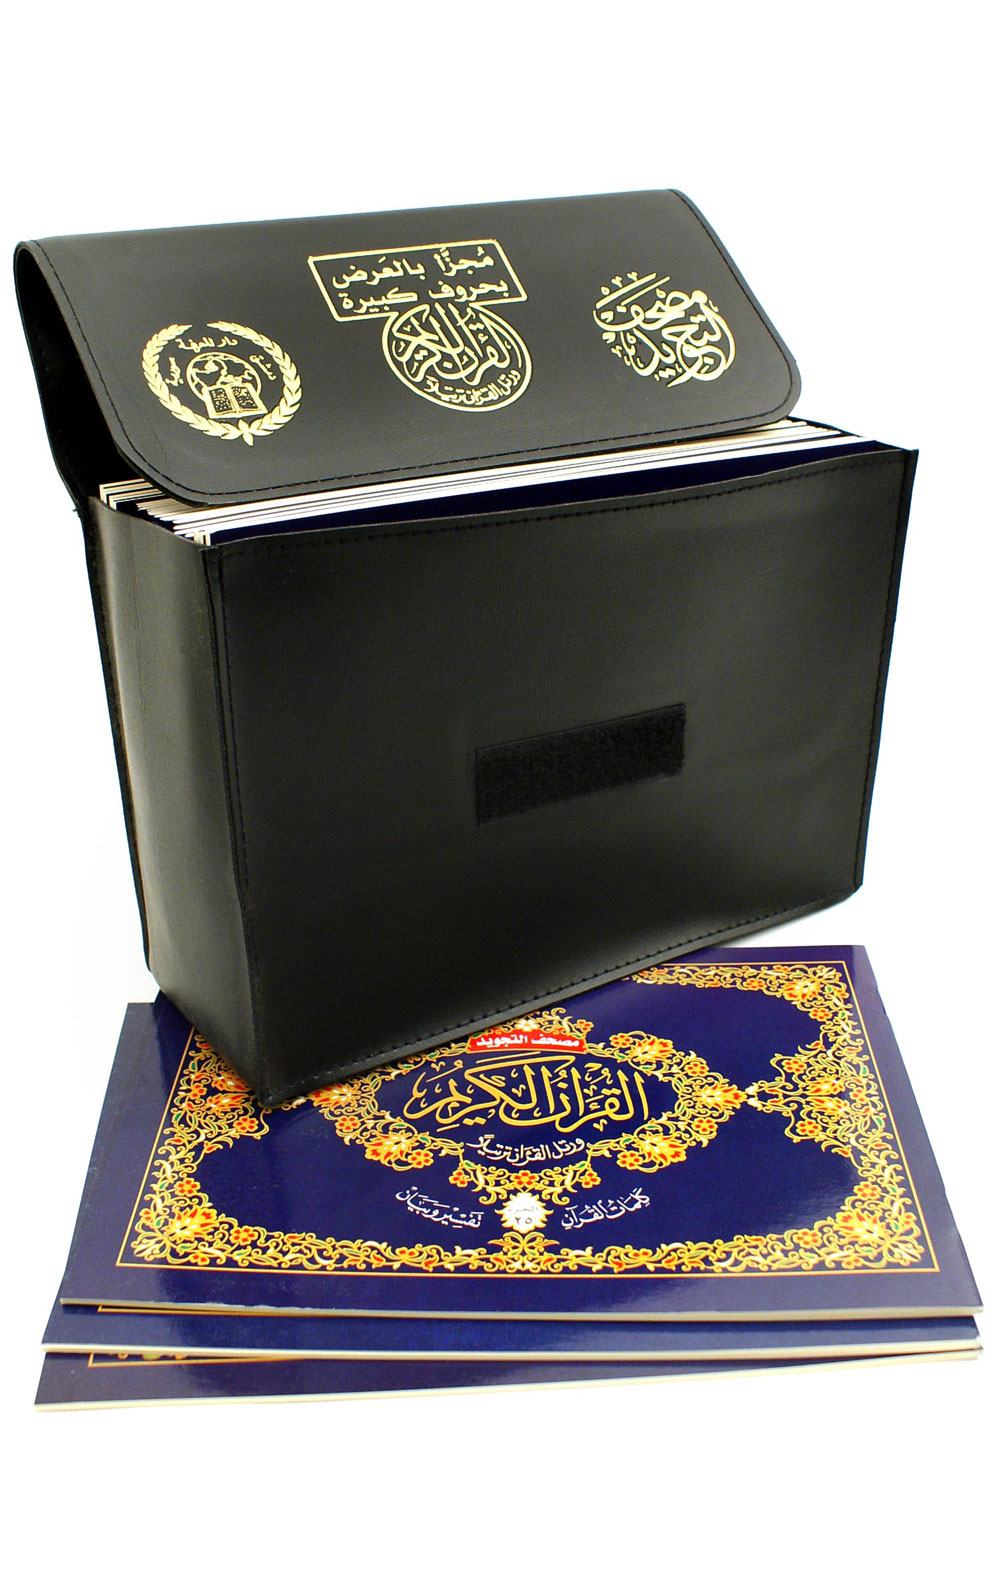 Tajweed Quran in 30 Parts - Landscape Pages in Leather Case